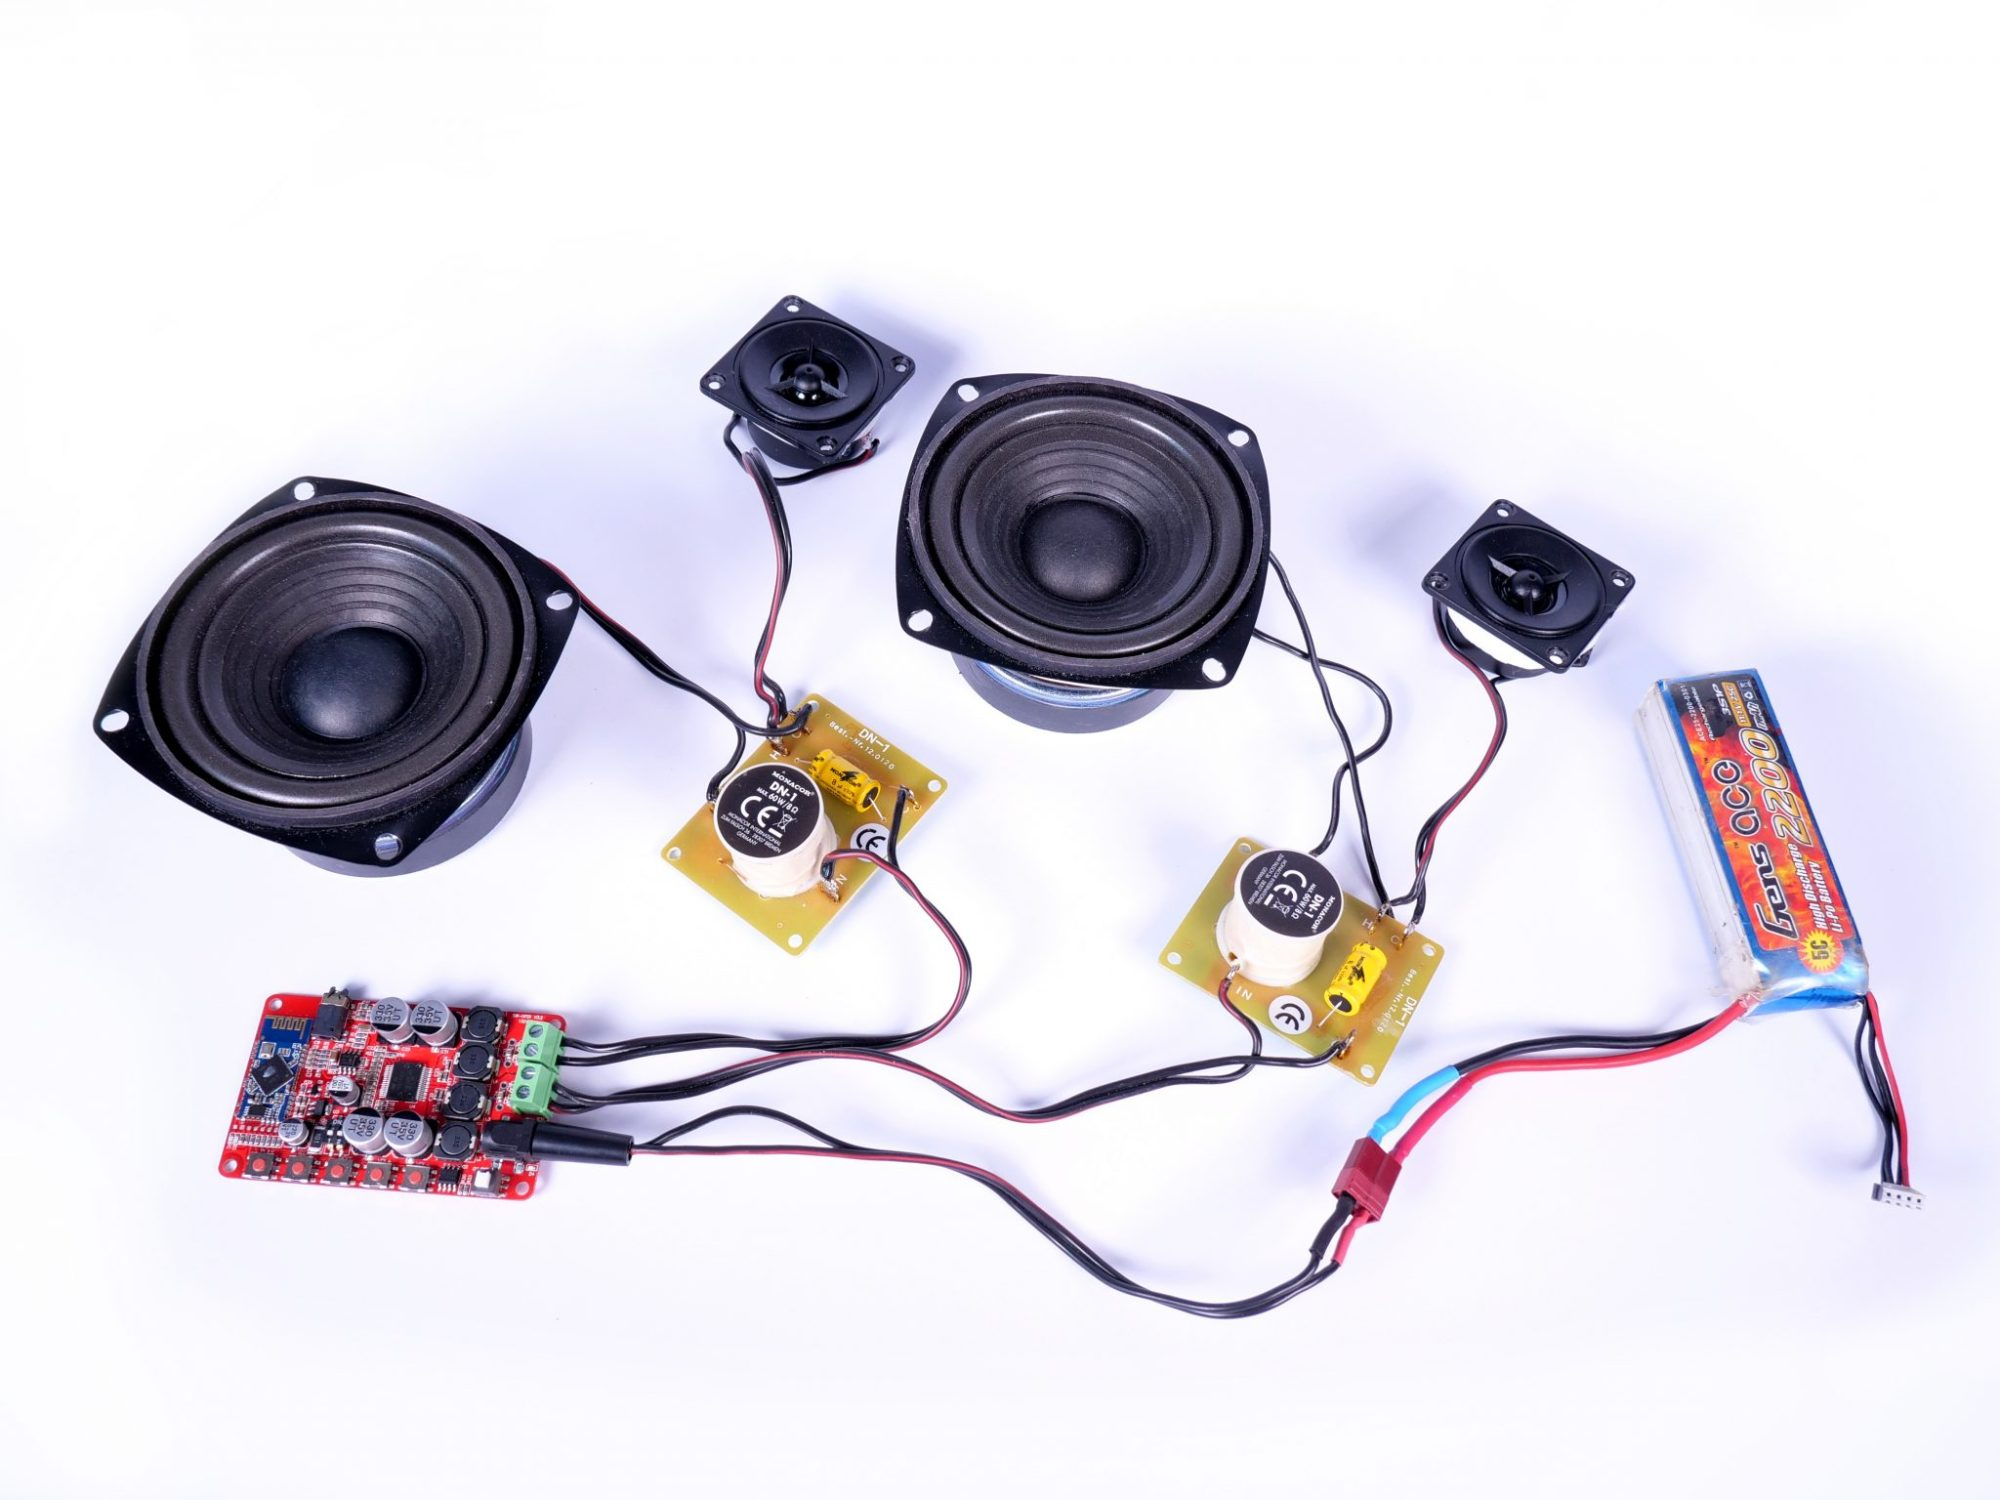 hight resolution of the amplifier and speakers can be left unused for now the instruction manual with the wiring diagram for the crossover can be downloaded here